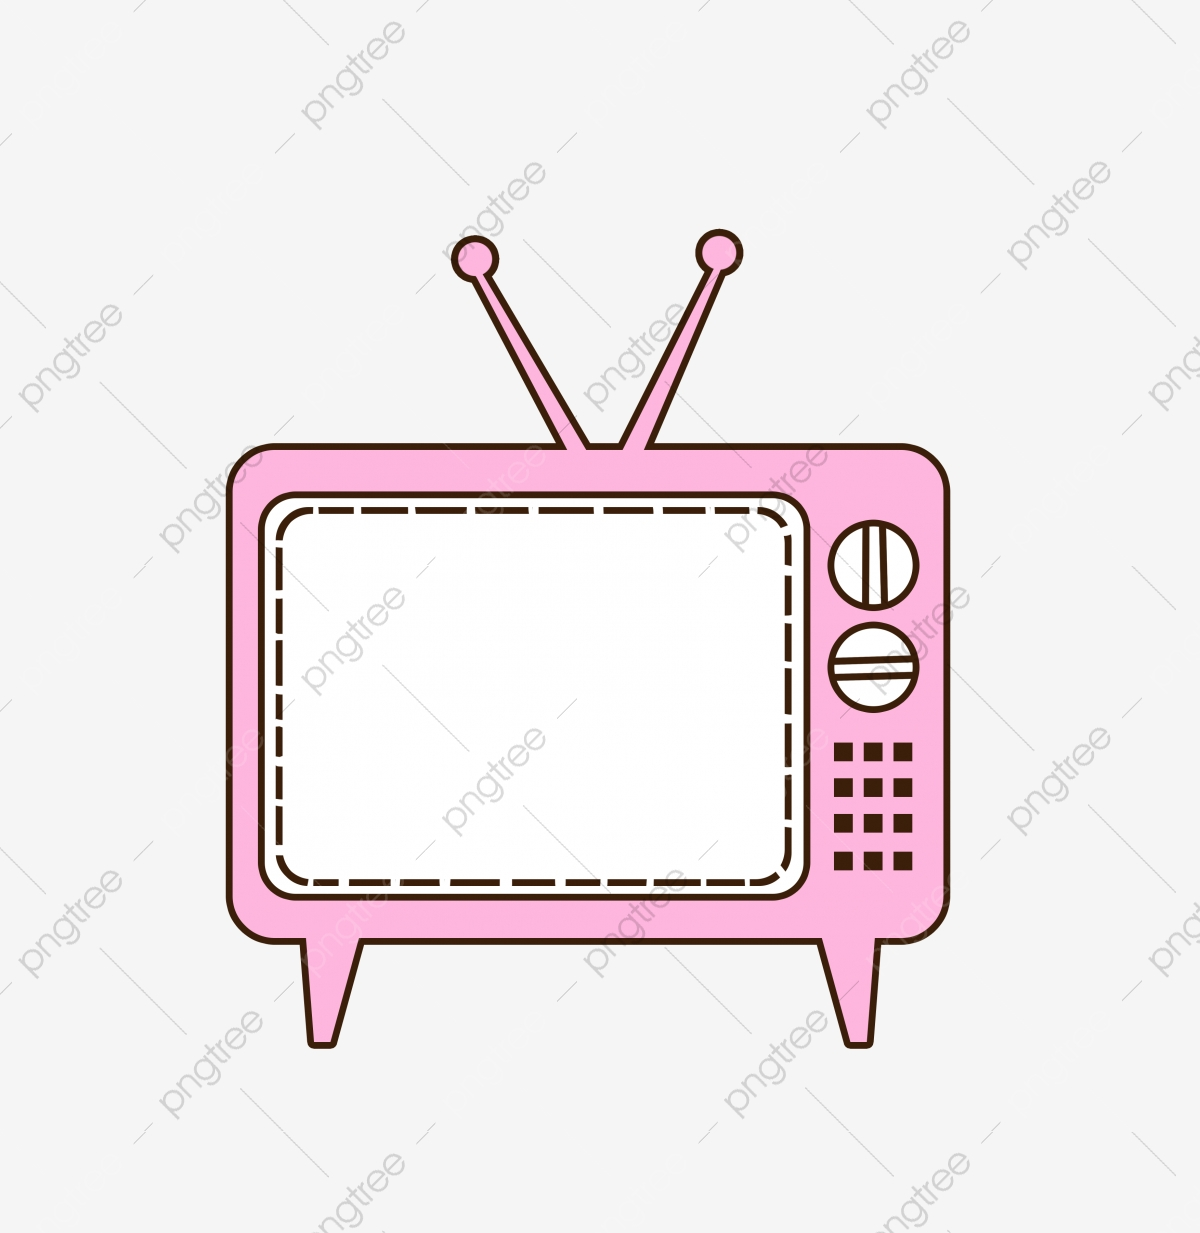 Antenna Tv, Tv Clipart, Old Tv, Reminiscence PNG Transparent Clipart.